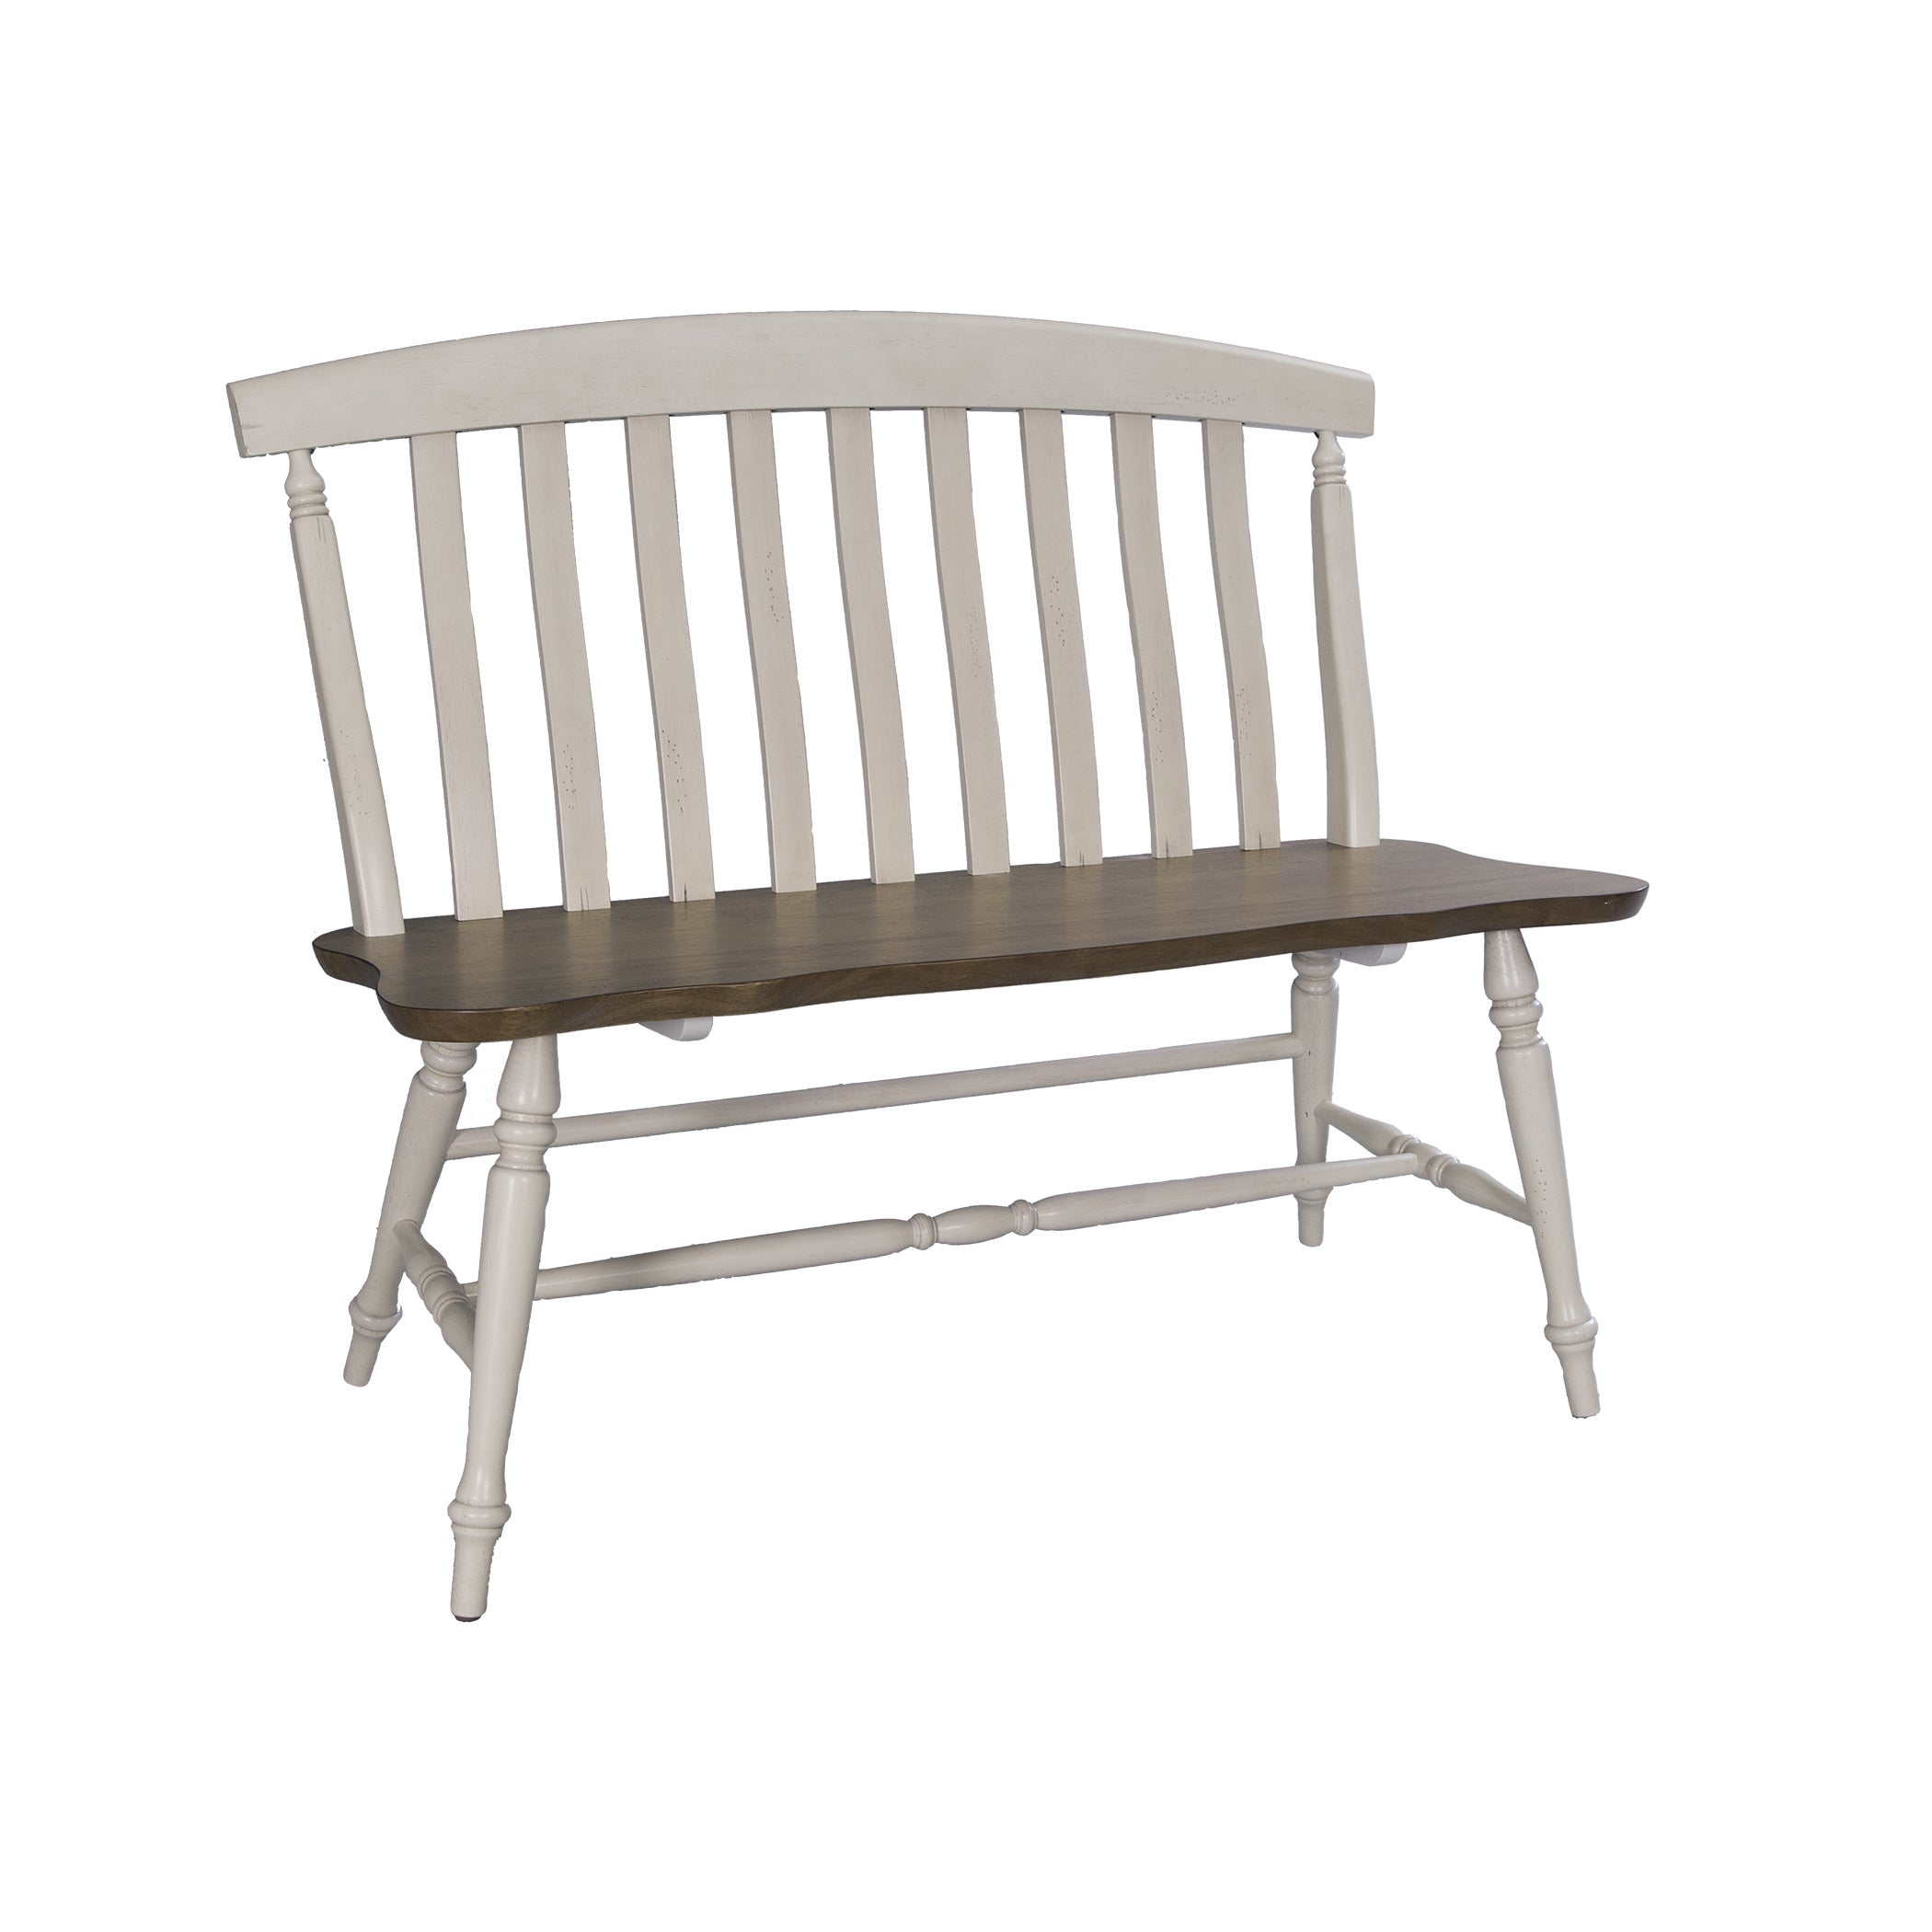 Superb Fresco Two Tone Transitional Slat Back Dining Bench Squirreltailoven Fun Painted Chair Ideas Images Squirreltailovenorg